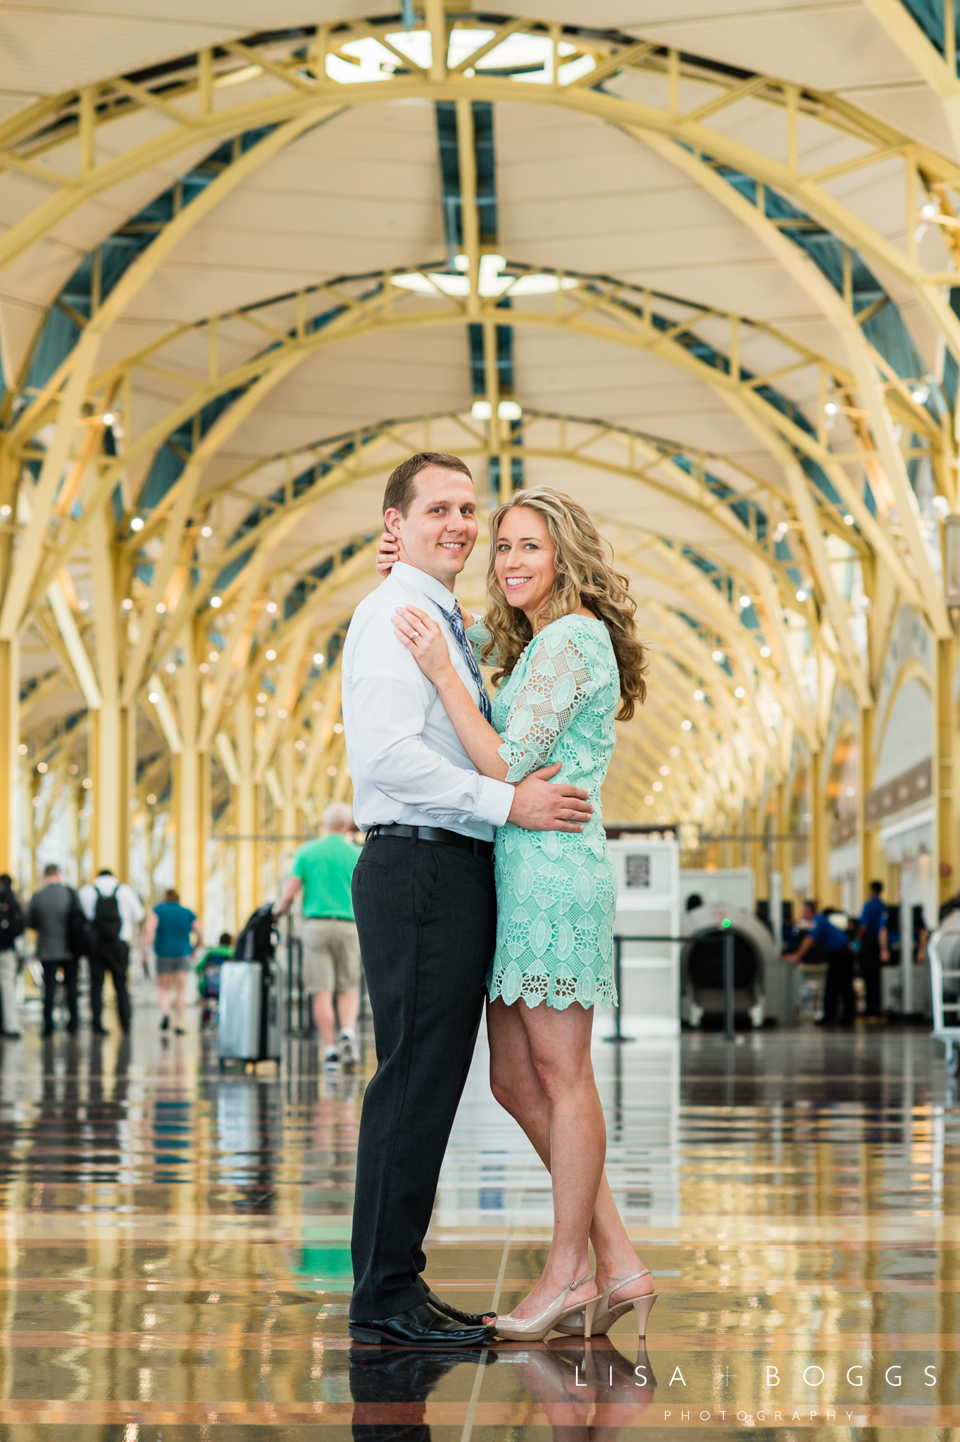 s&d_reagan_national_airport_engagement_portraits_lisa_boggs_photography_05.jpg